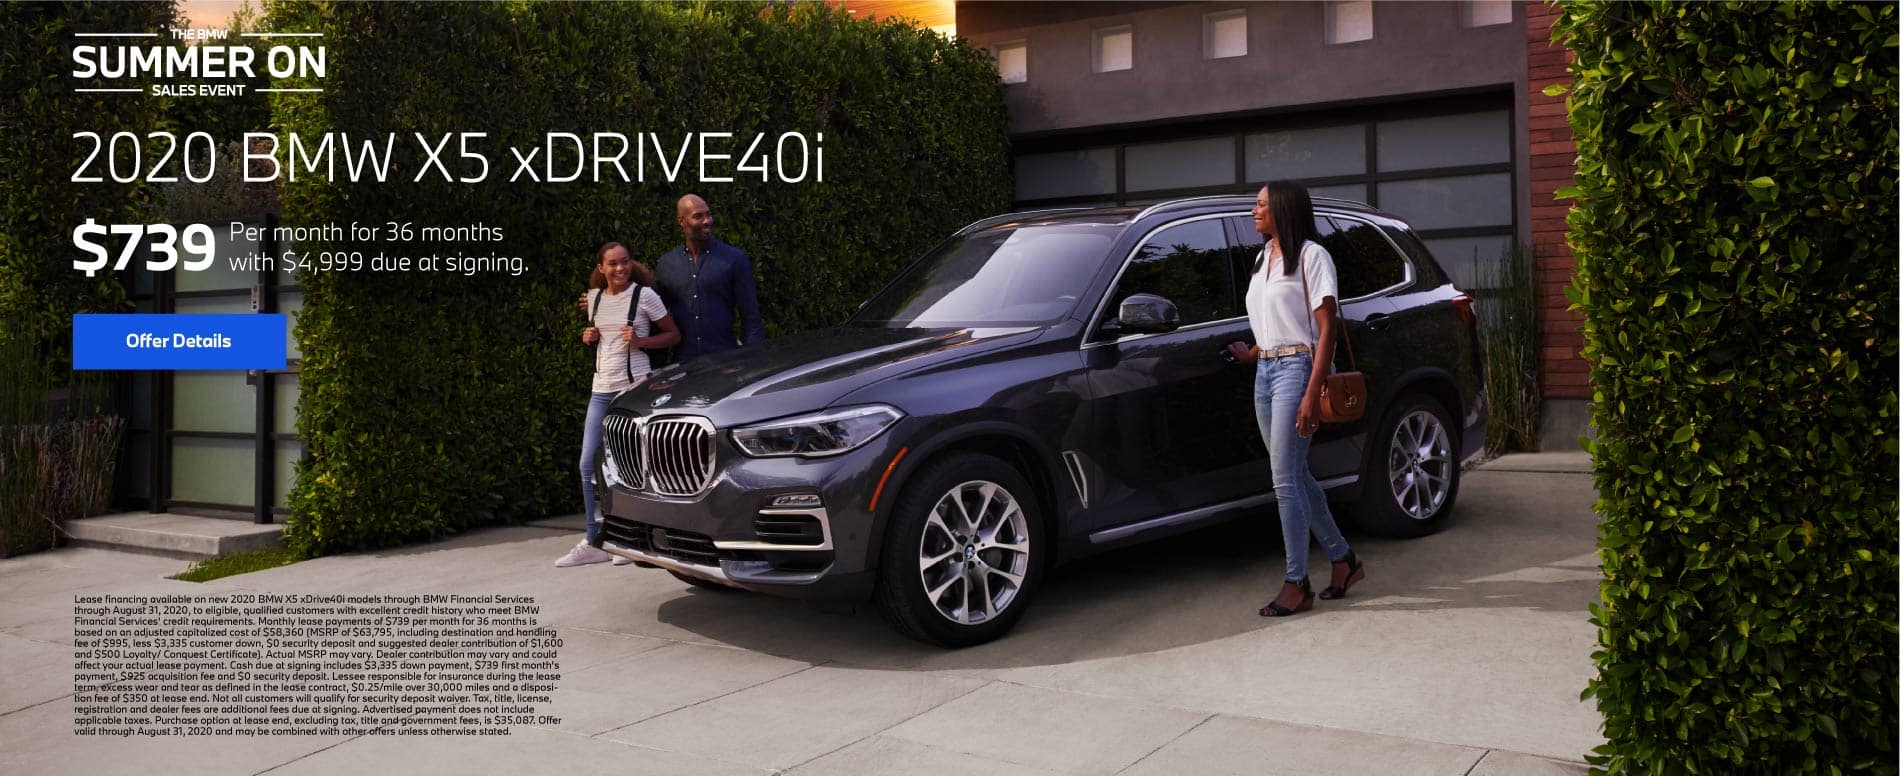 2020 BMW X5 xDrive40i $739 a month for 36 months | Offer Details